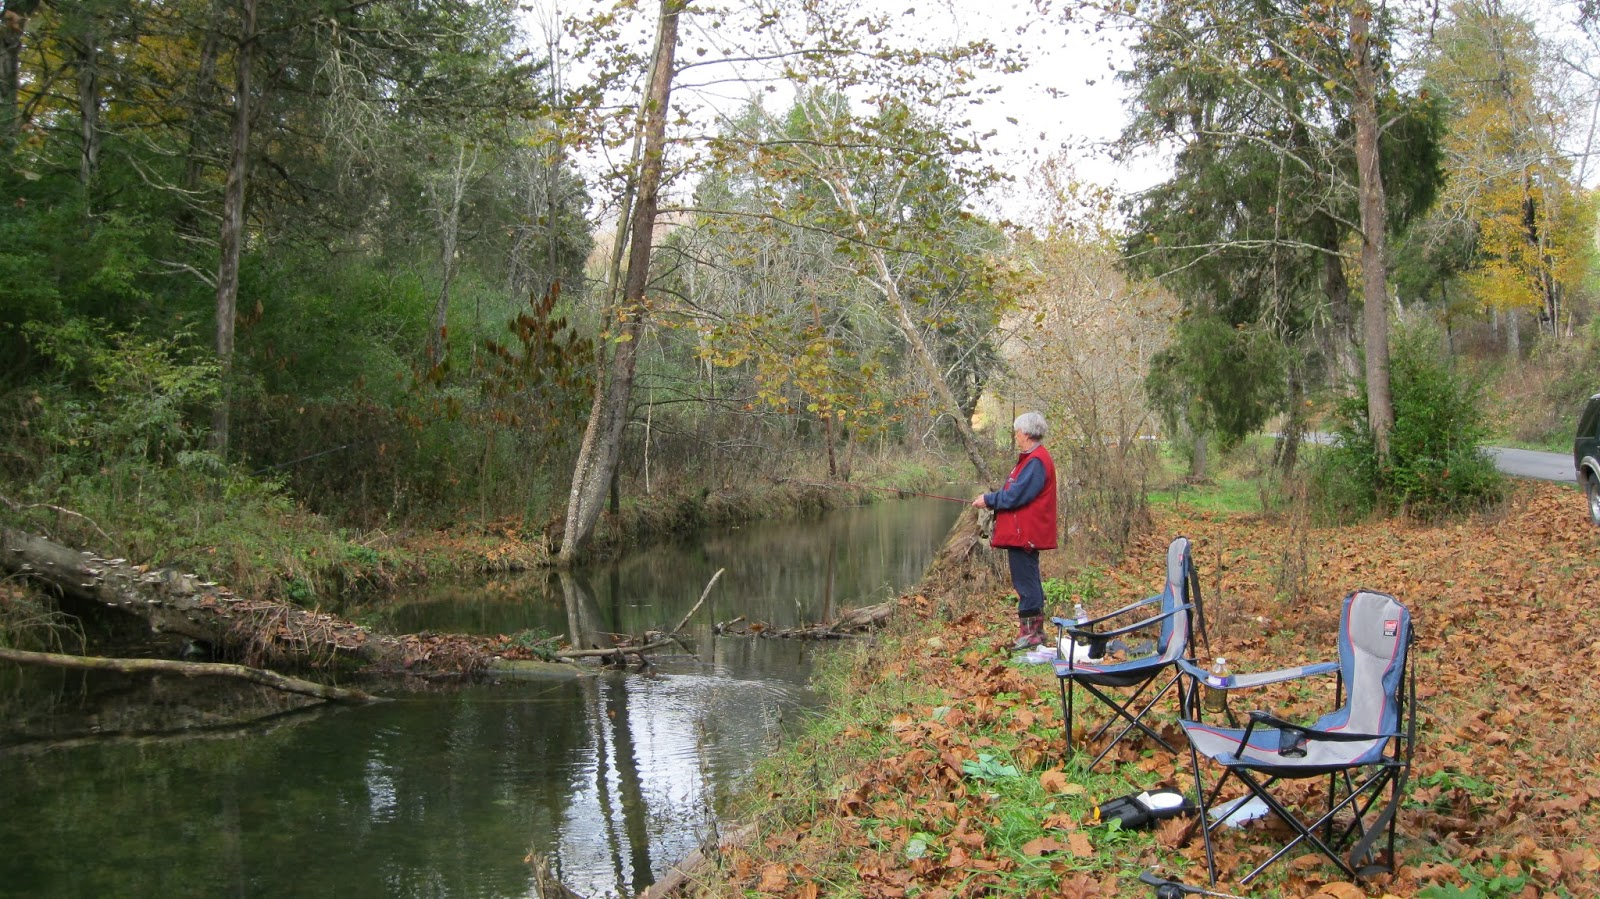 lee county virginia: stop # 29: fishing in trout-stocked martins